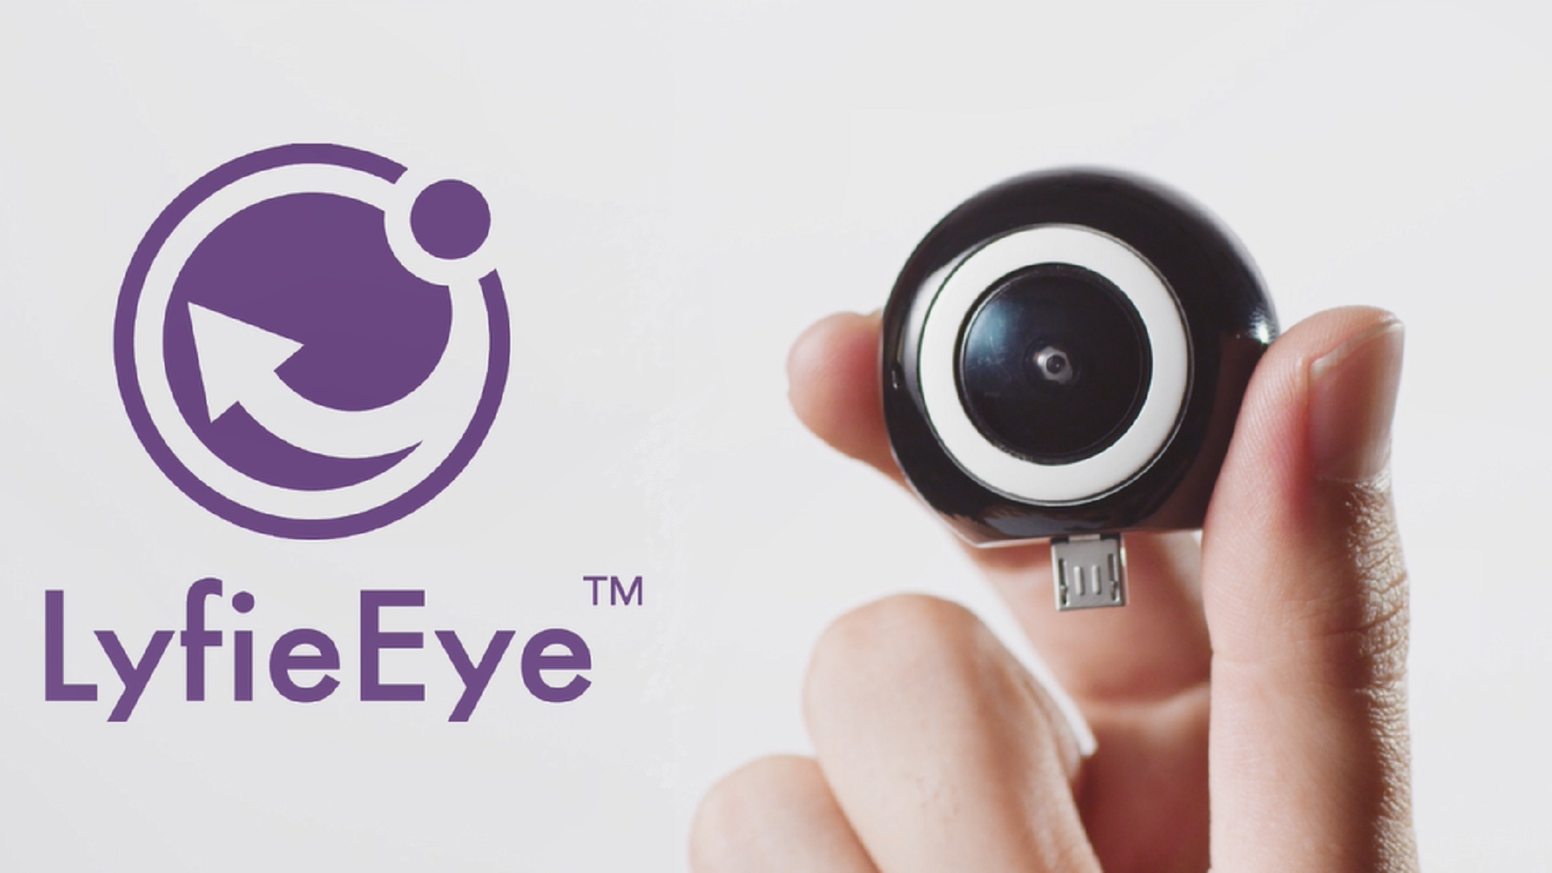 LyfieEye™ allows users to record and share Spherical 360⁰ content using their Android™ smartphones.